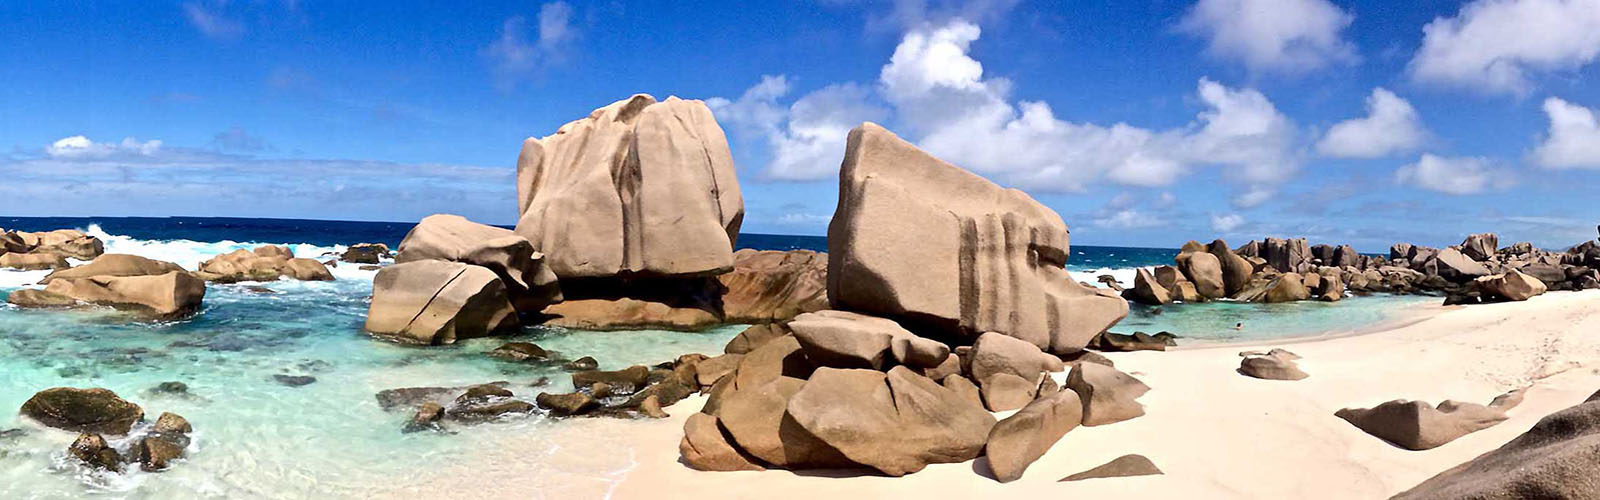 PhotoFly Travel Club | Upcoming Trips Page 2 Seychelles Crop 1600 | PhotoFly Travel Club